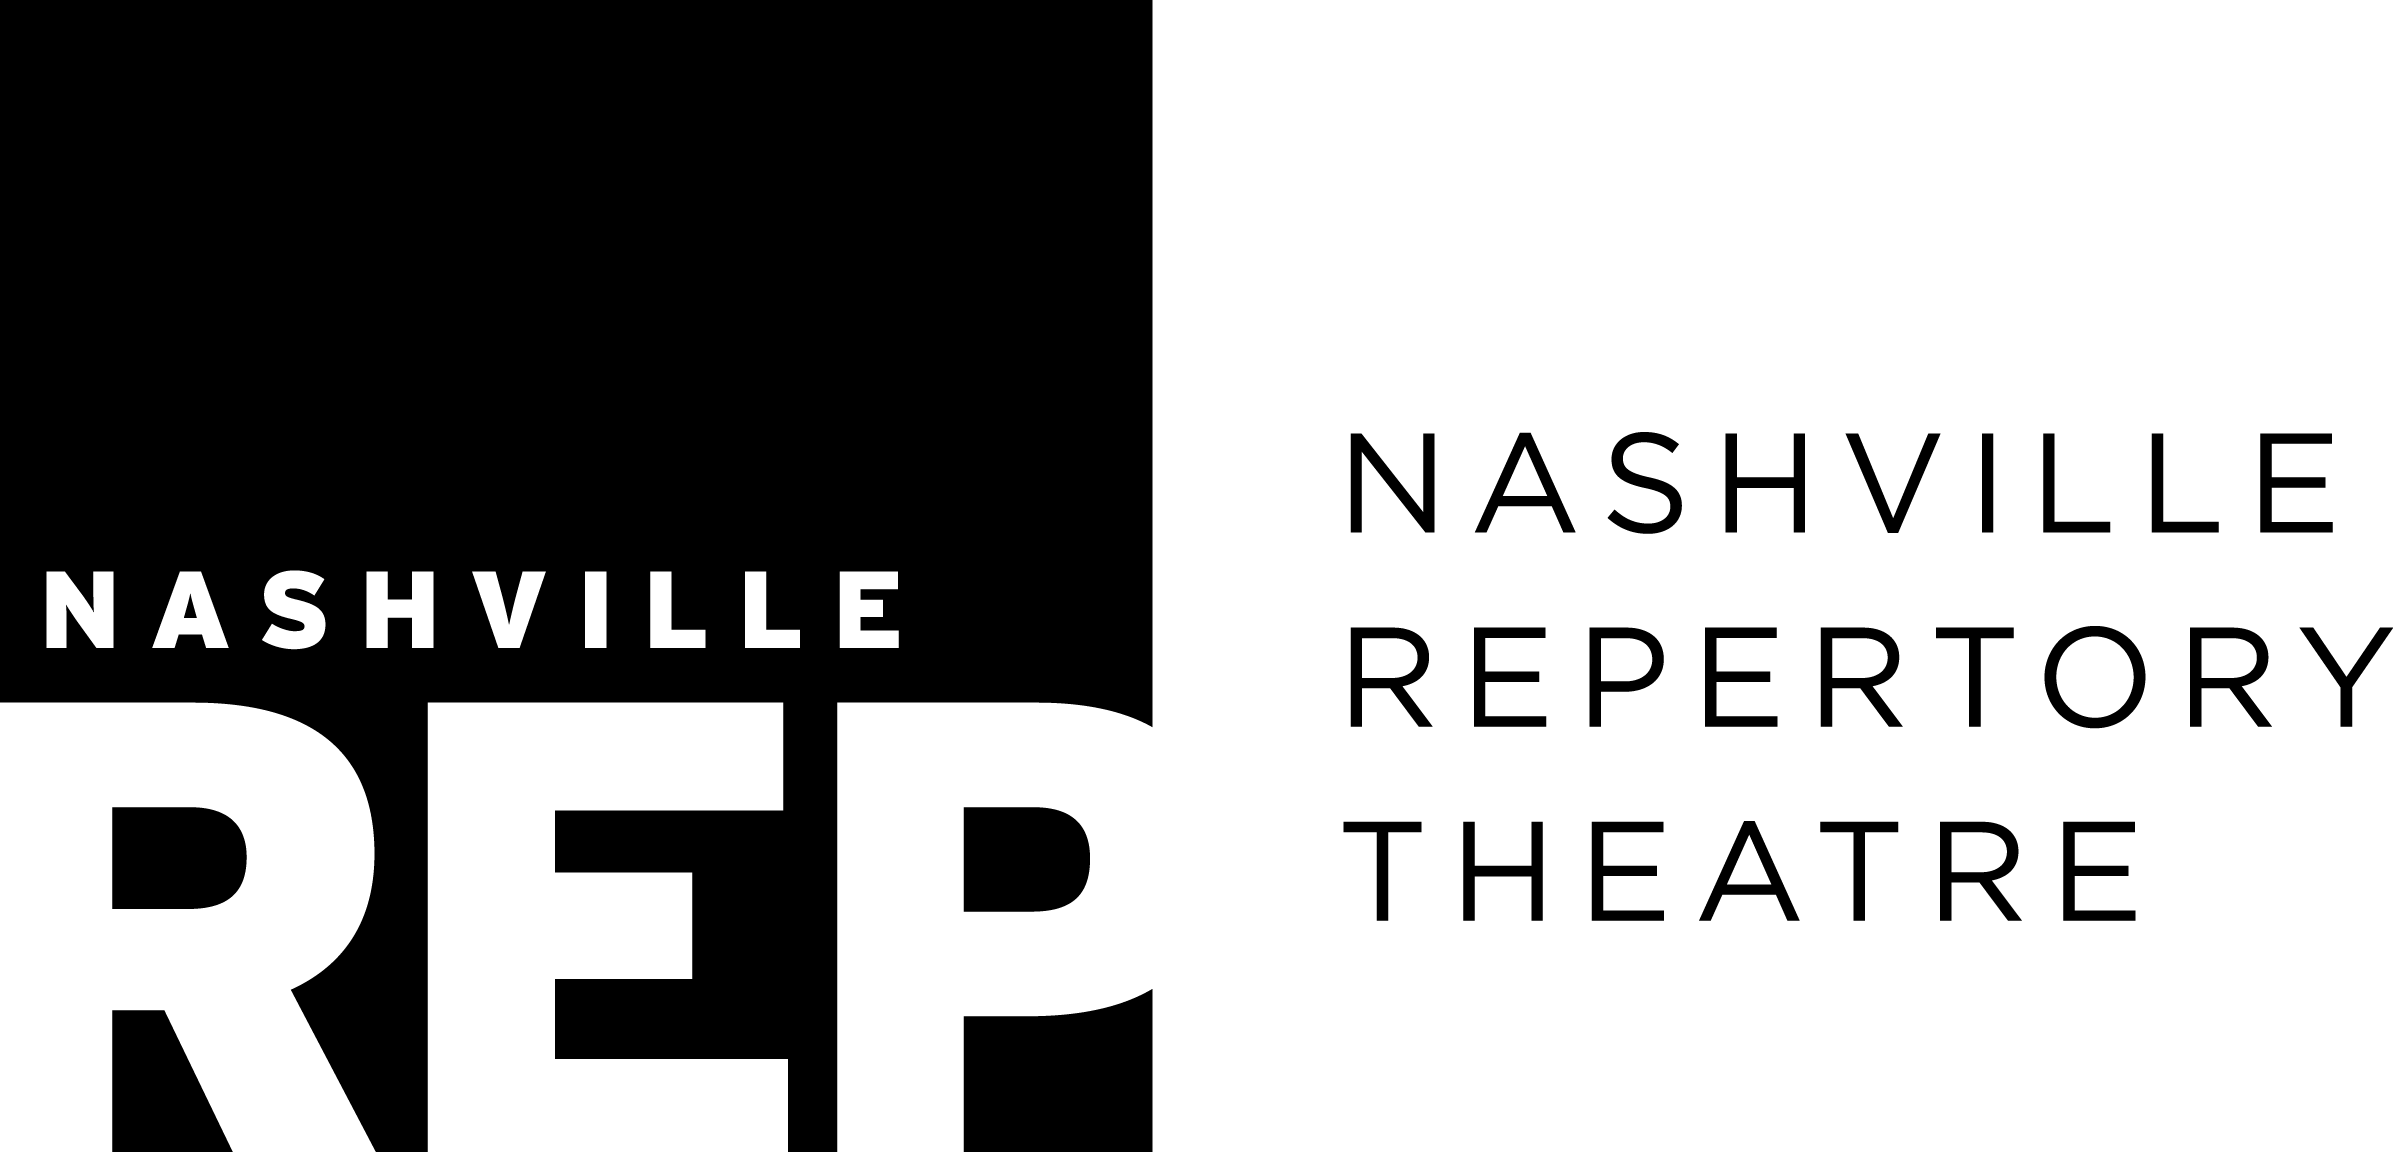 nashville-rep-black-logo-long.png